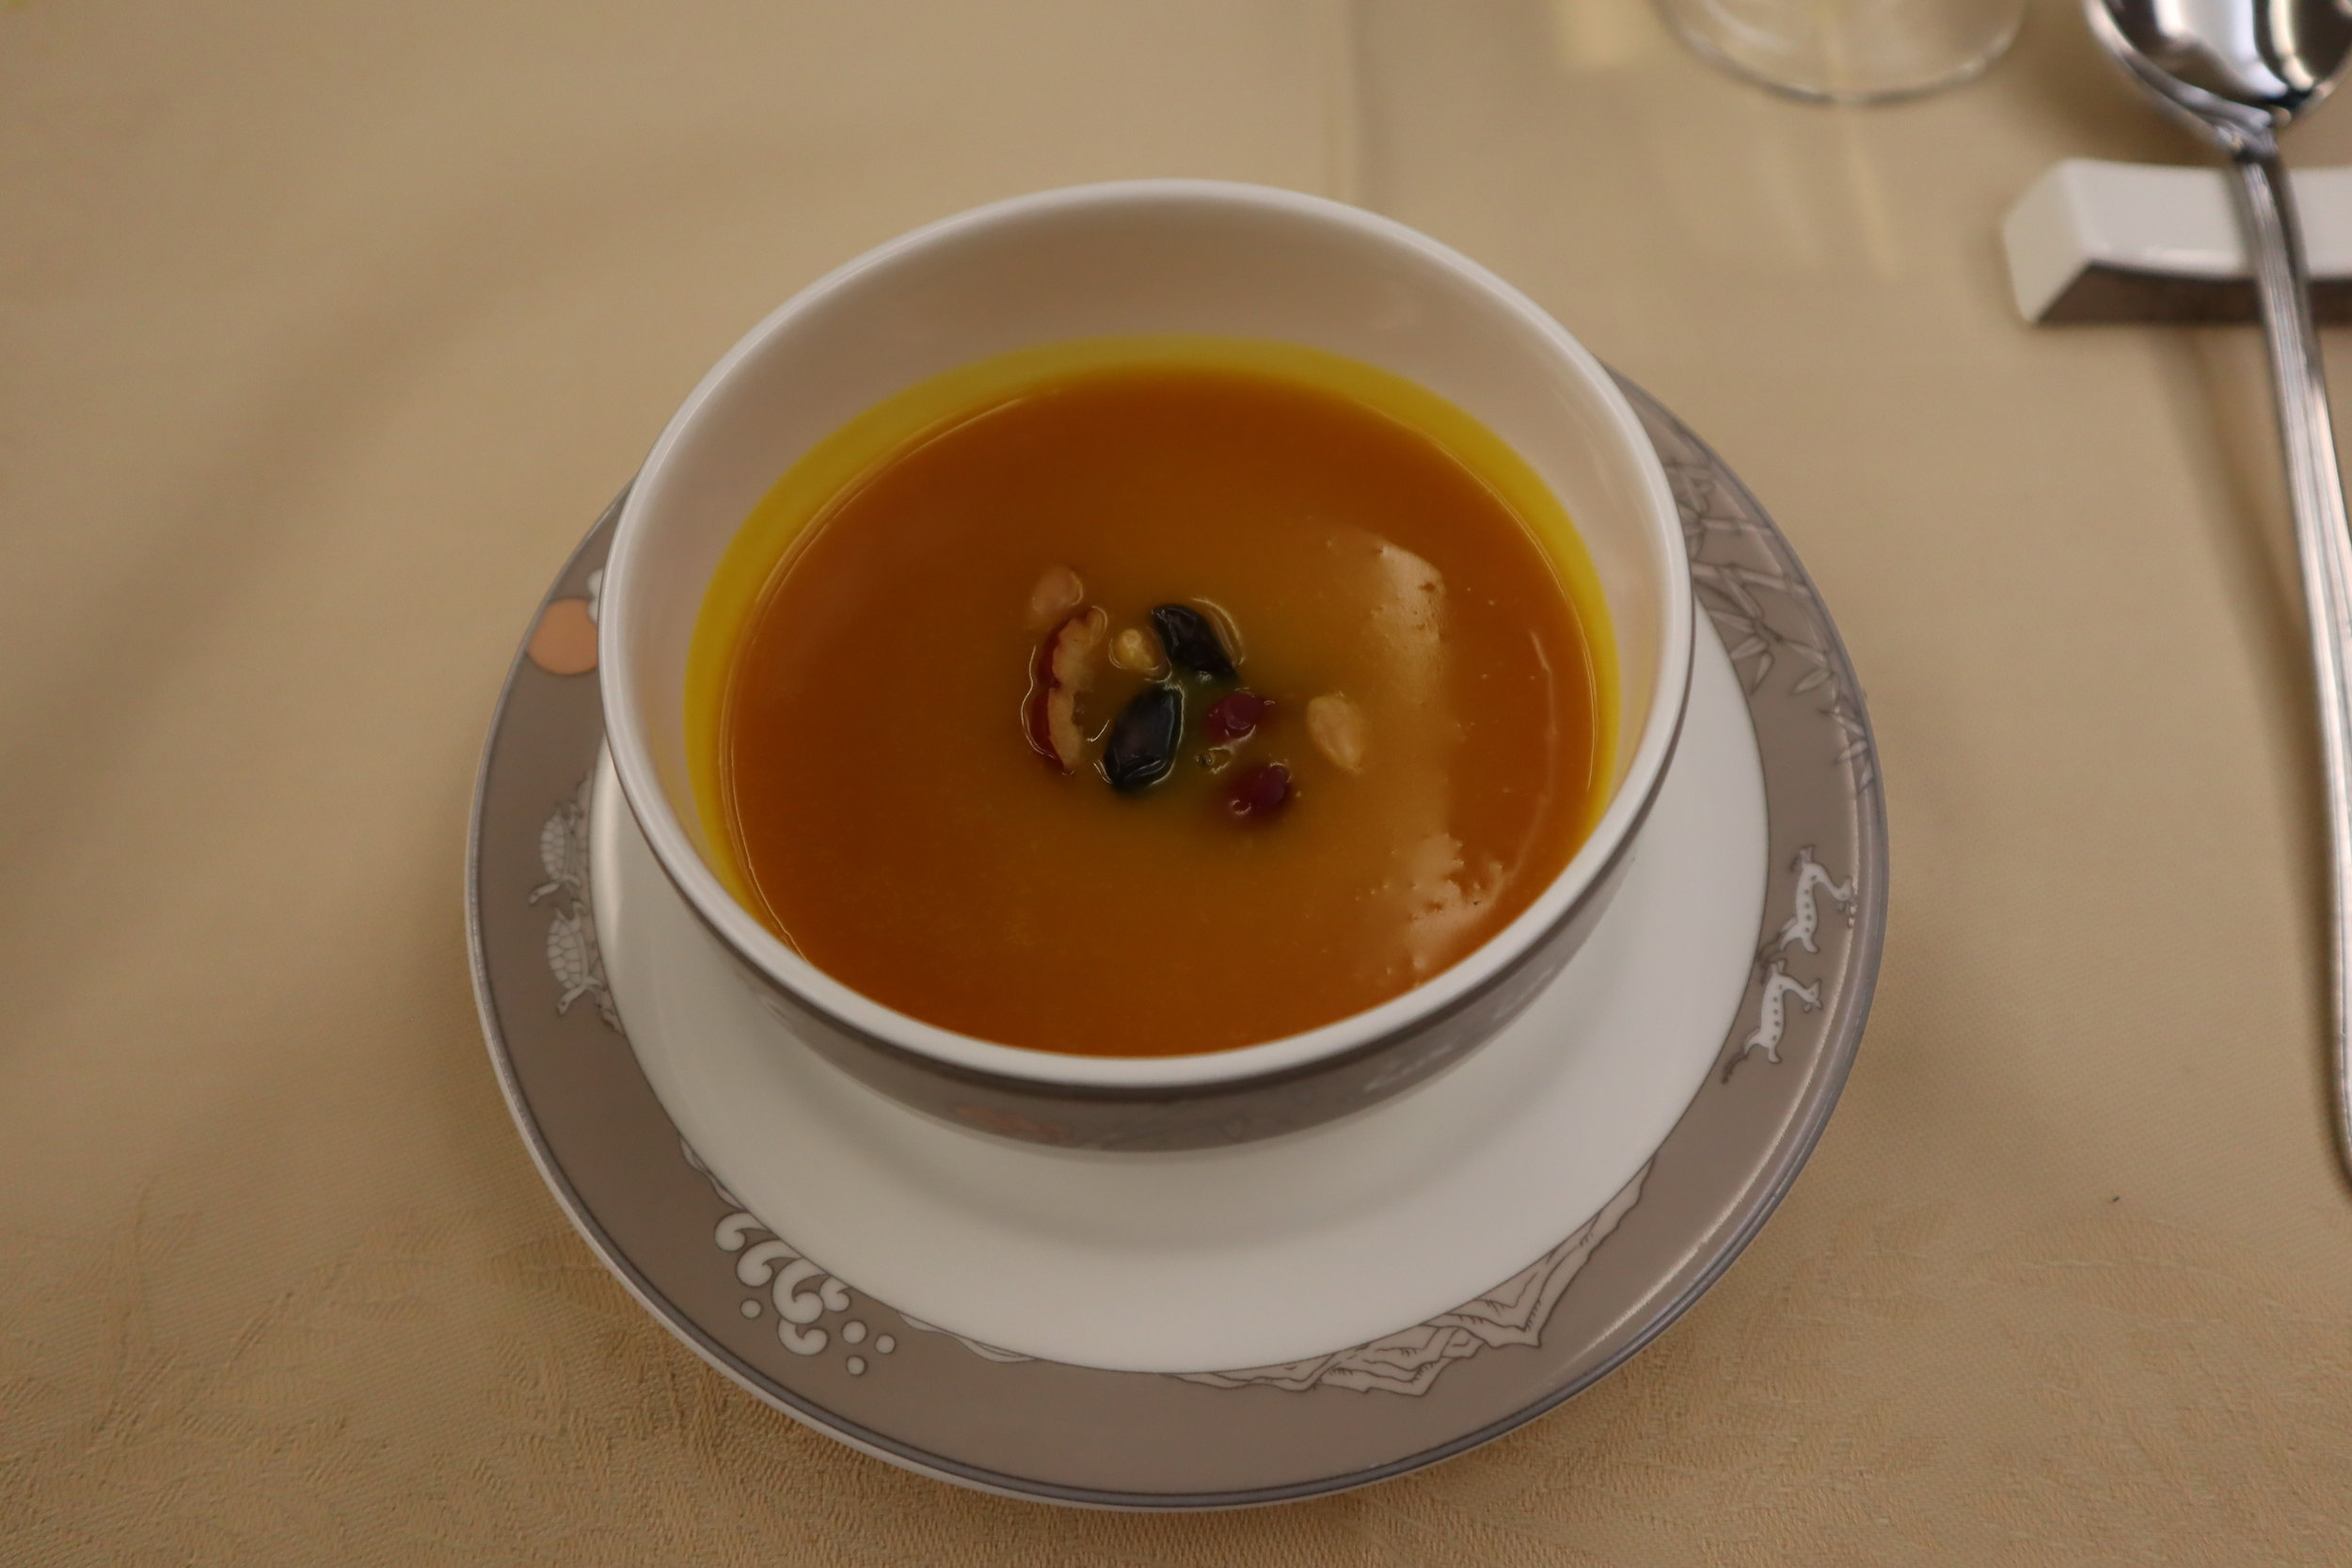 Asiana Airlines First Class – Pumpkin porridge